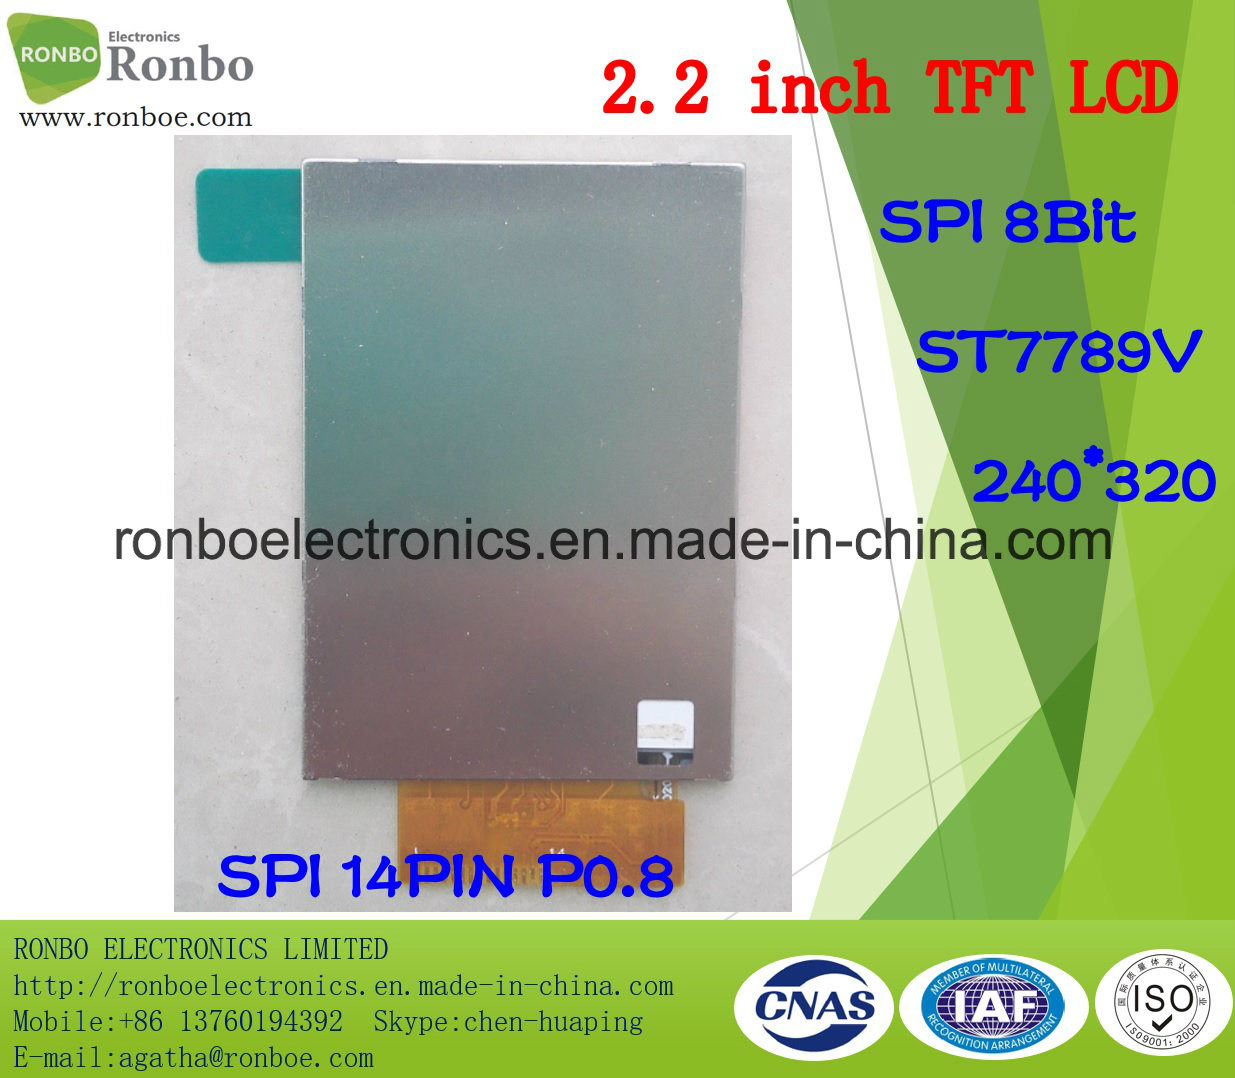 "2.2"" 240X320 Spi 14pin TFT LCD Display, St7789V for POS, Doorbell, Medical"